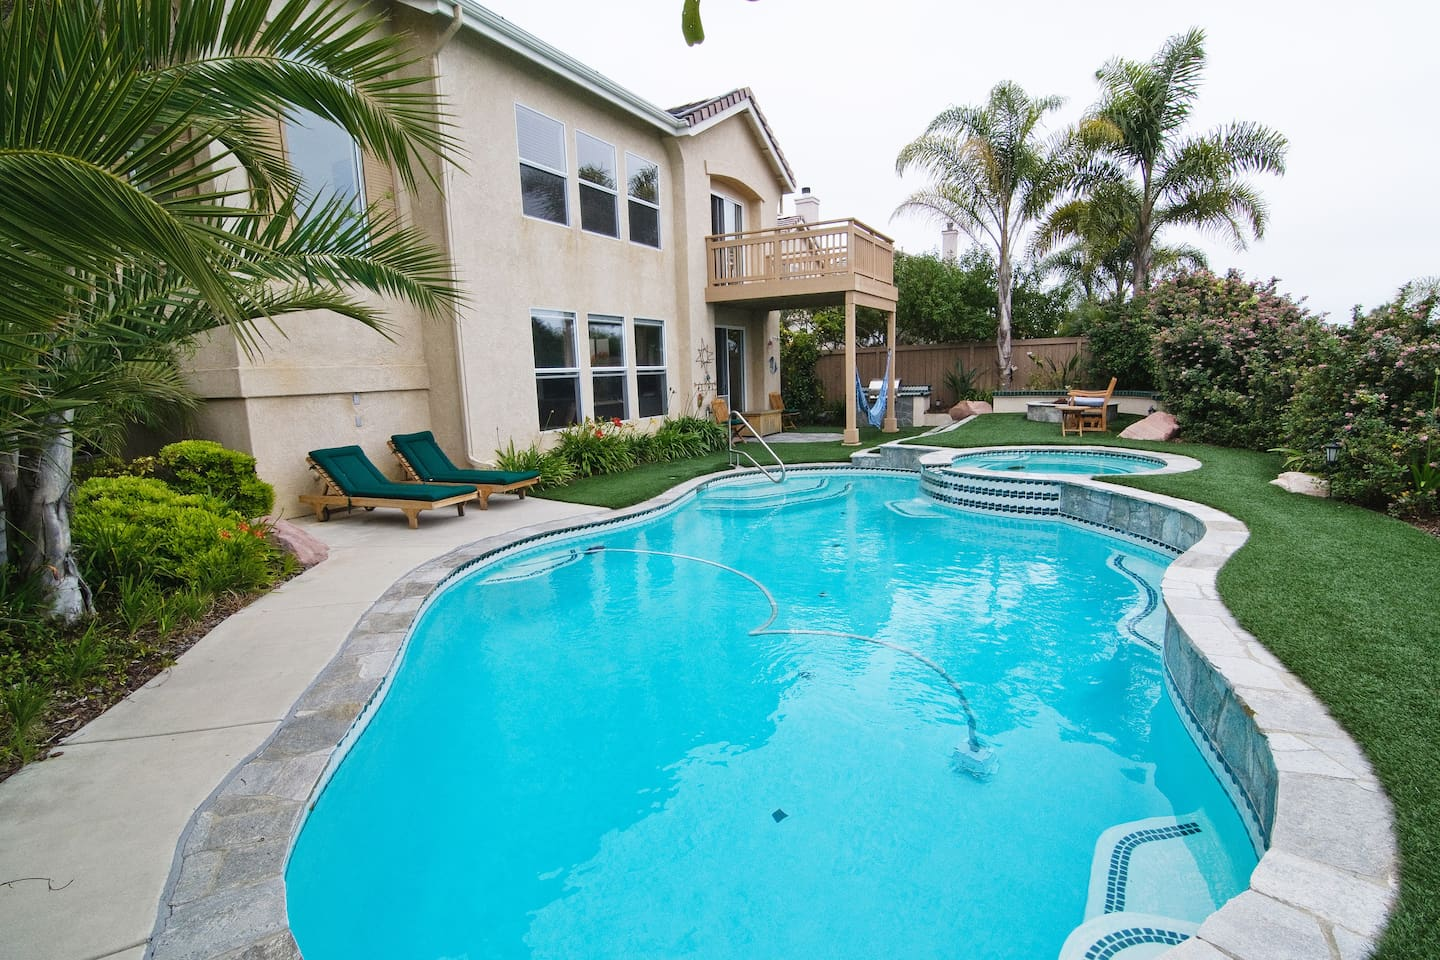 Pacific oceanview backyard with pool, jacuzzi, hammock, fire-pit, gas grill